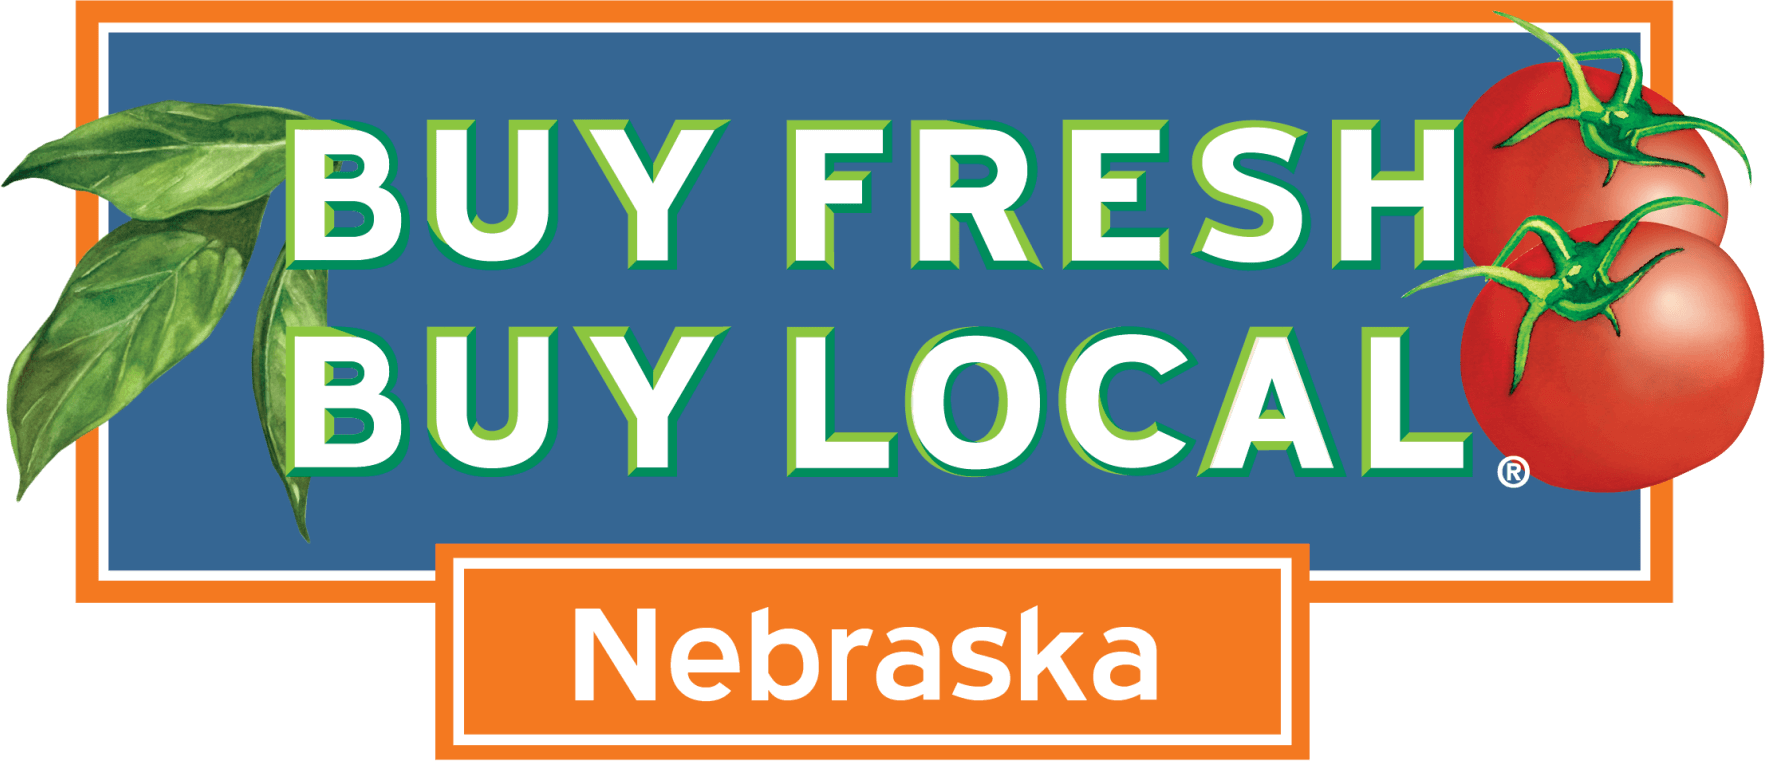 Buy Fresh Buy Local Nebraska Logo